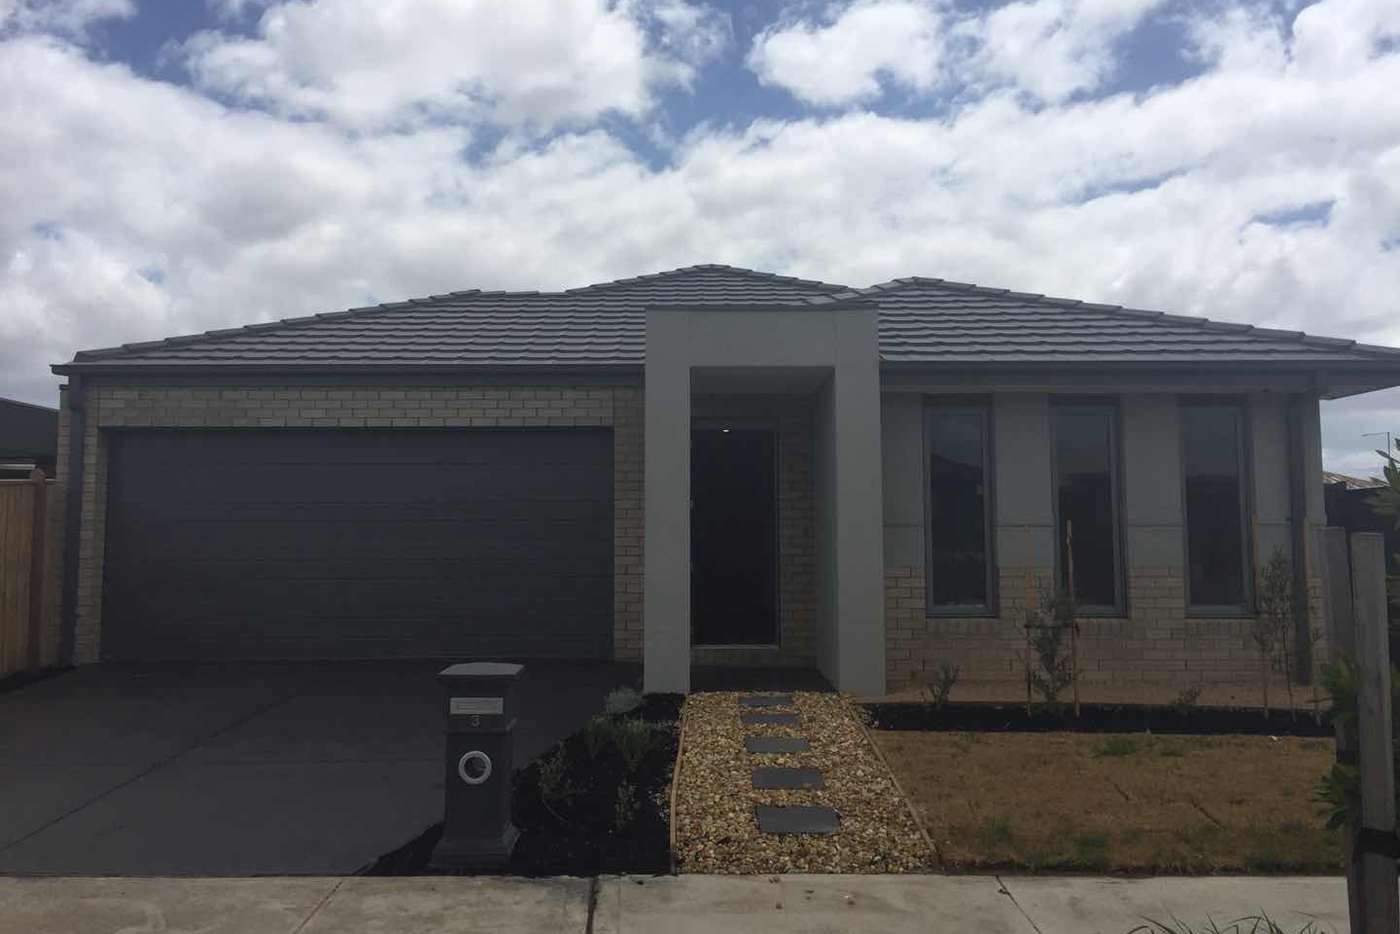 Main view of Homely house listing, 3 Biferno Cres, Cranbourne East VIC 3977